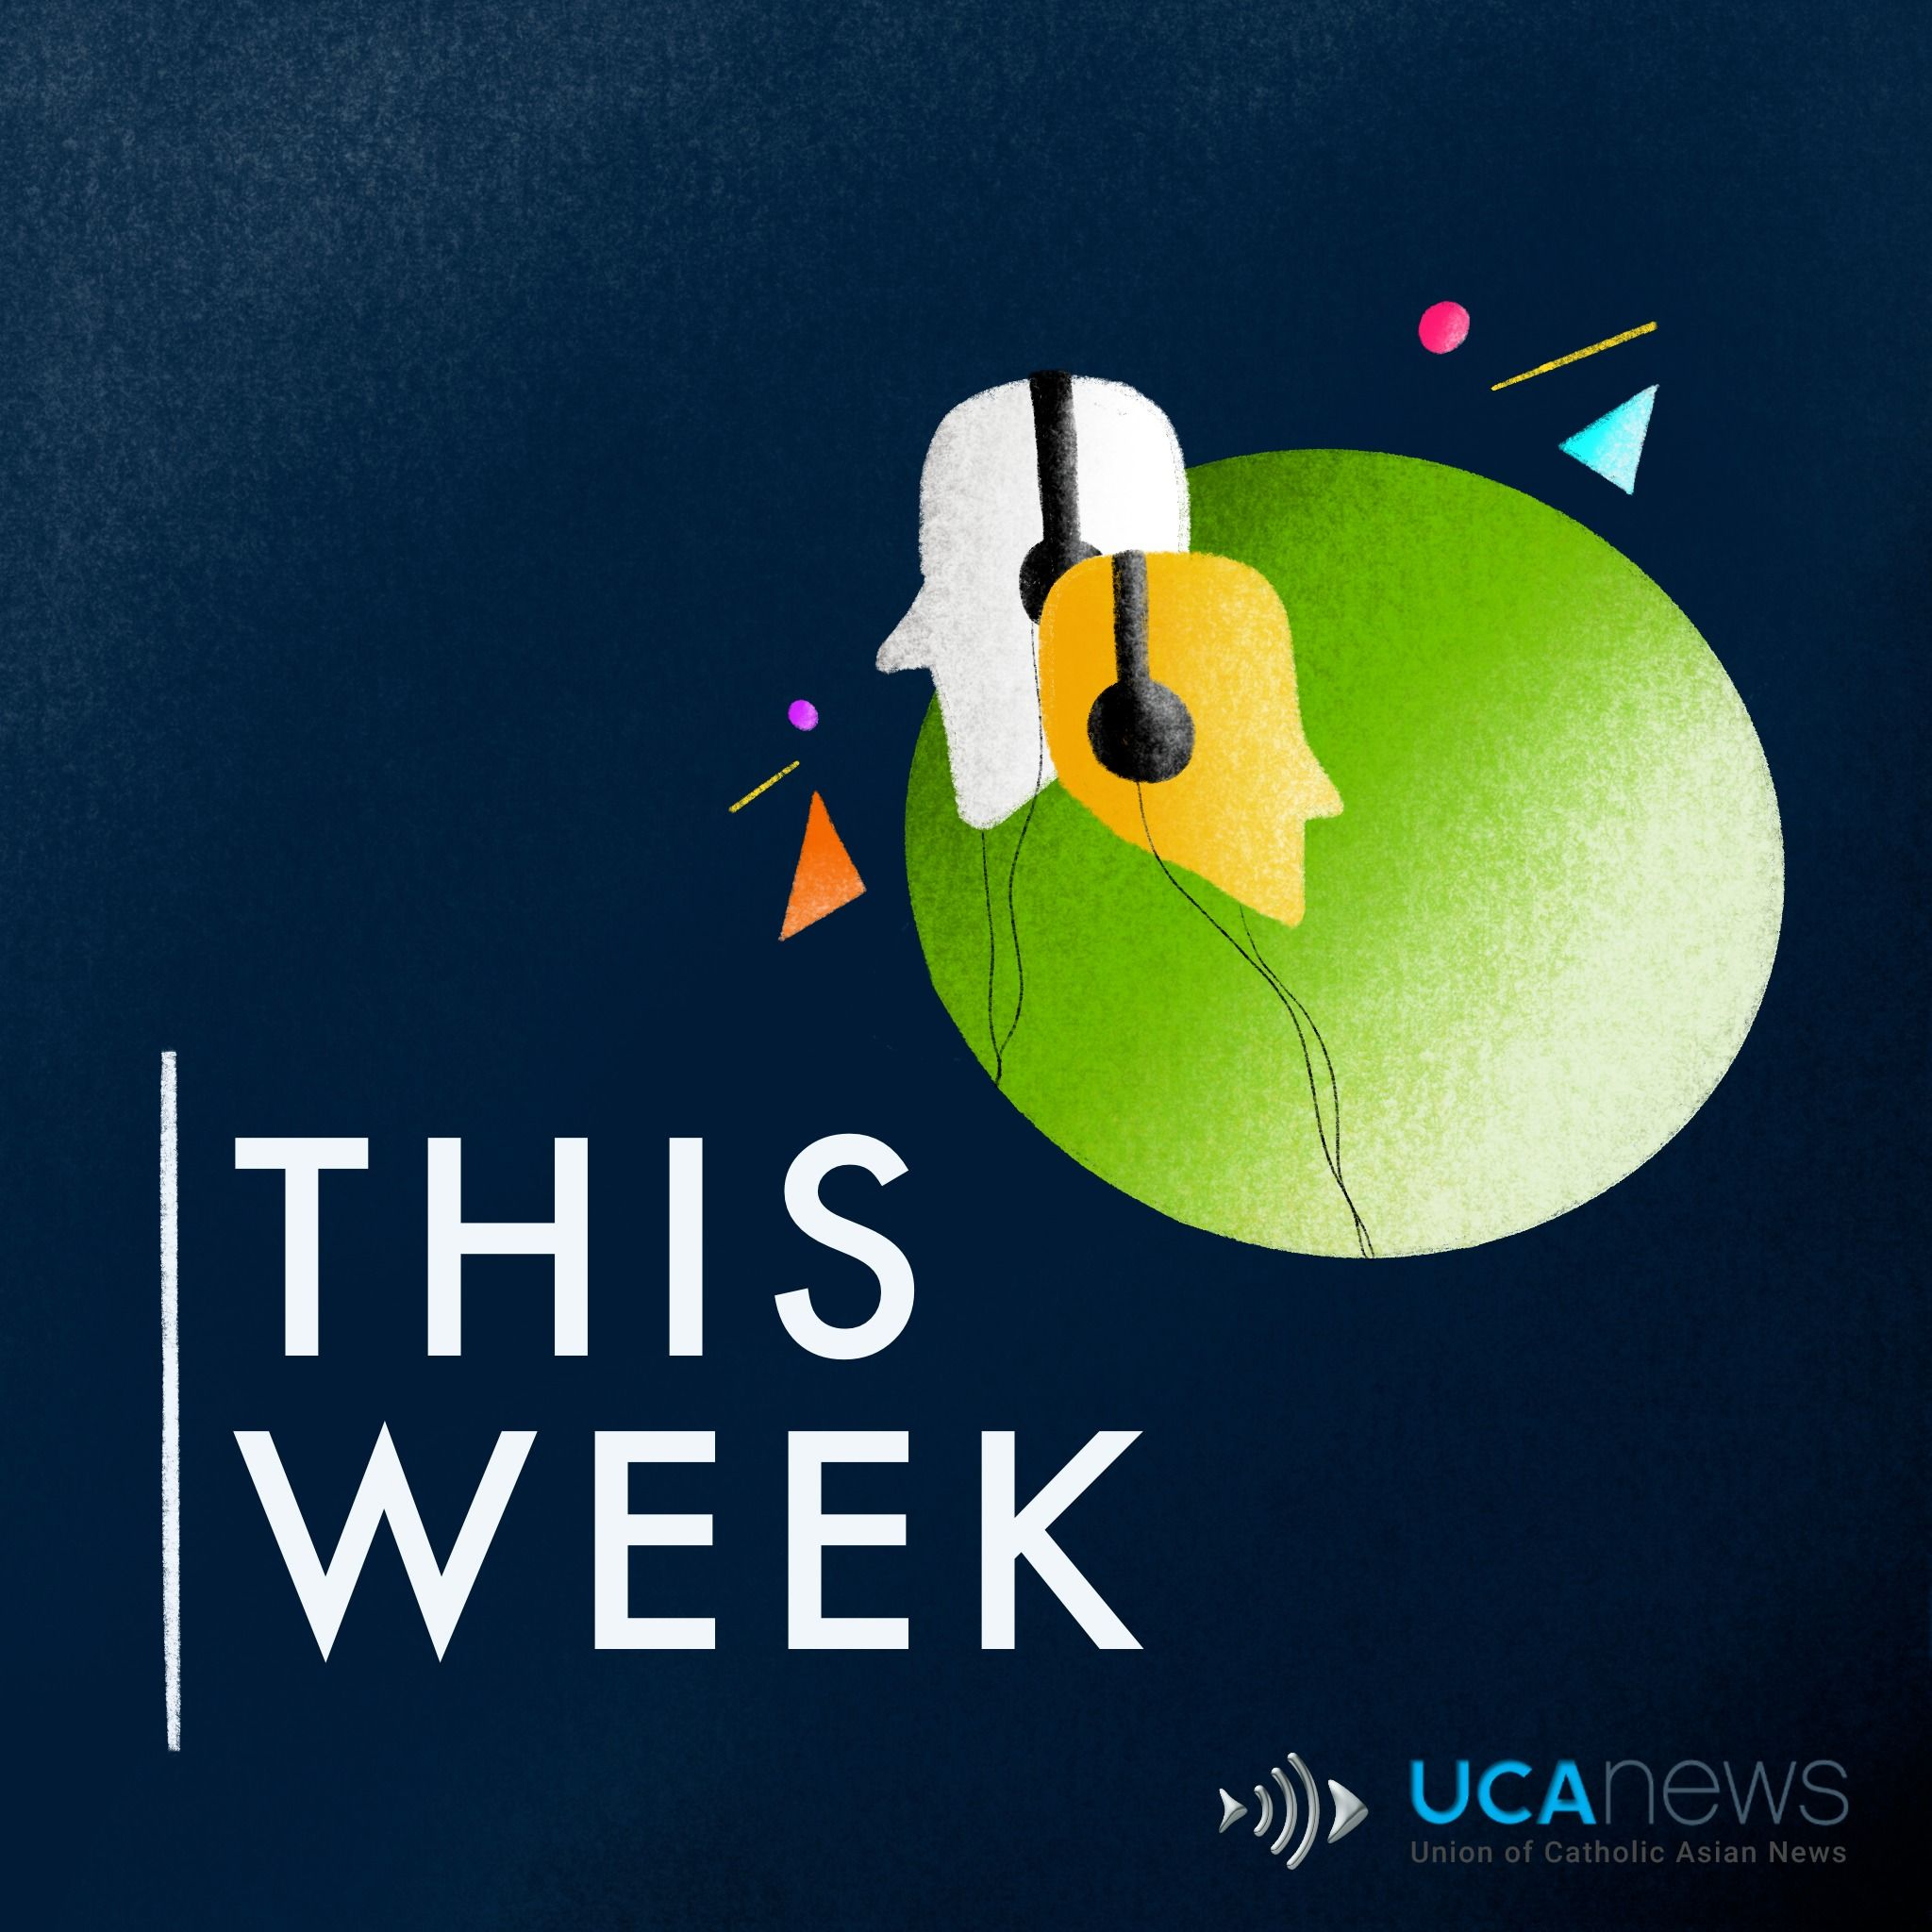 UCA News Weekly Summary, March 26, 2021